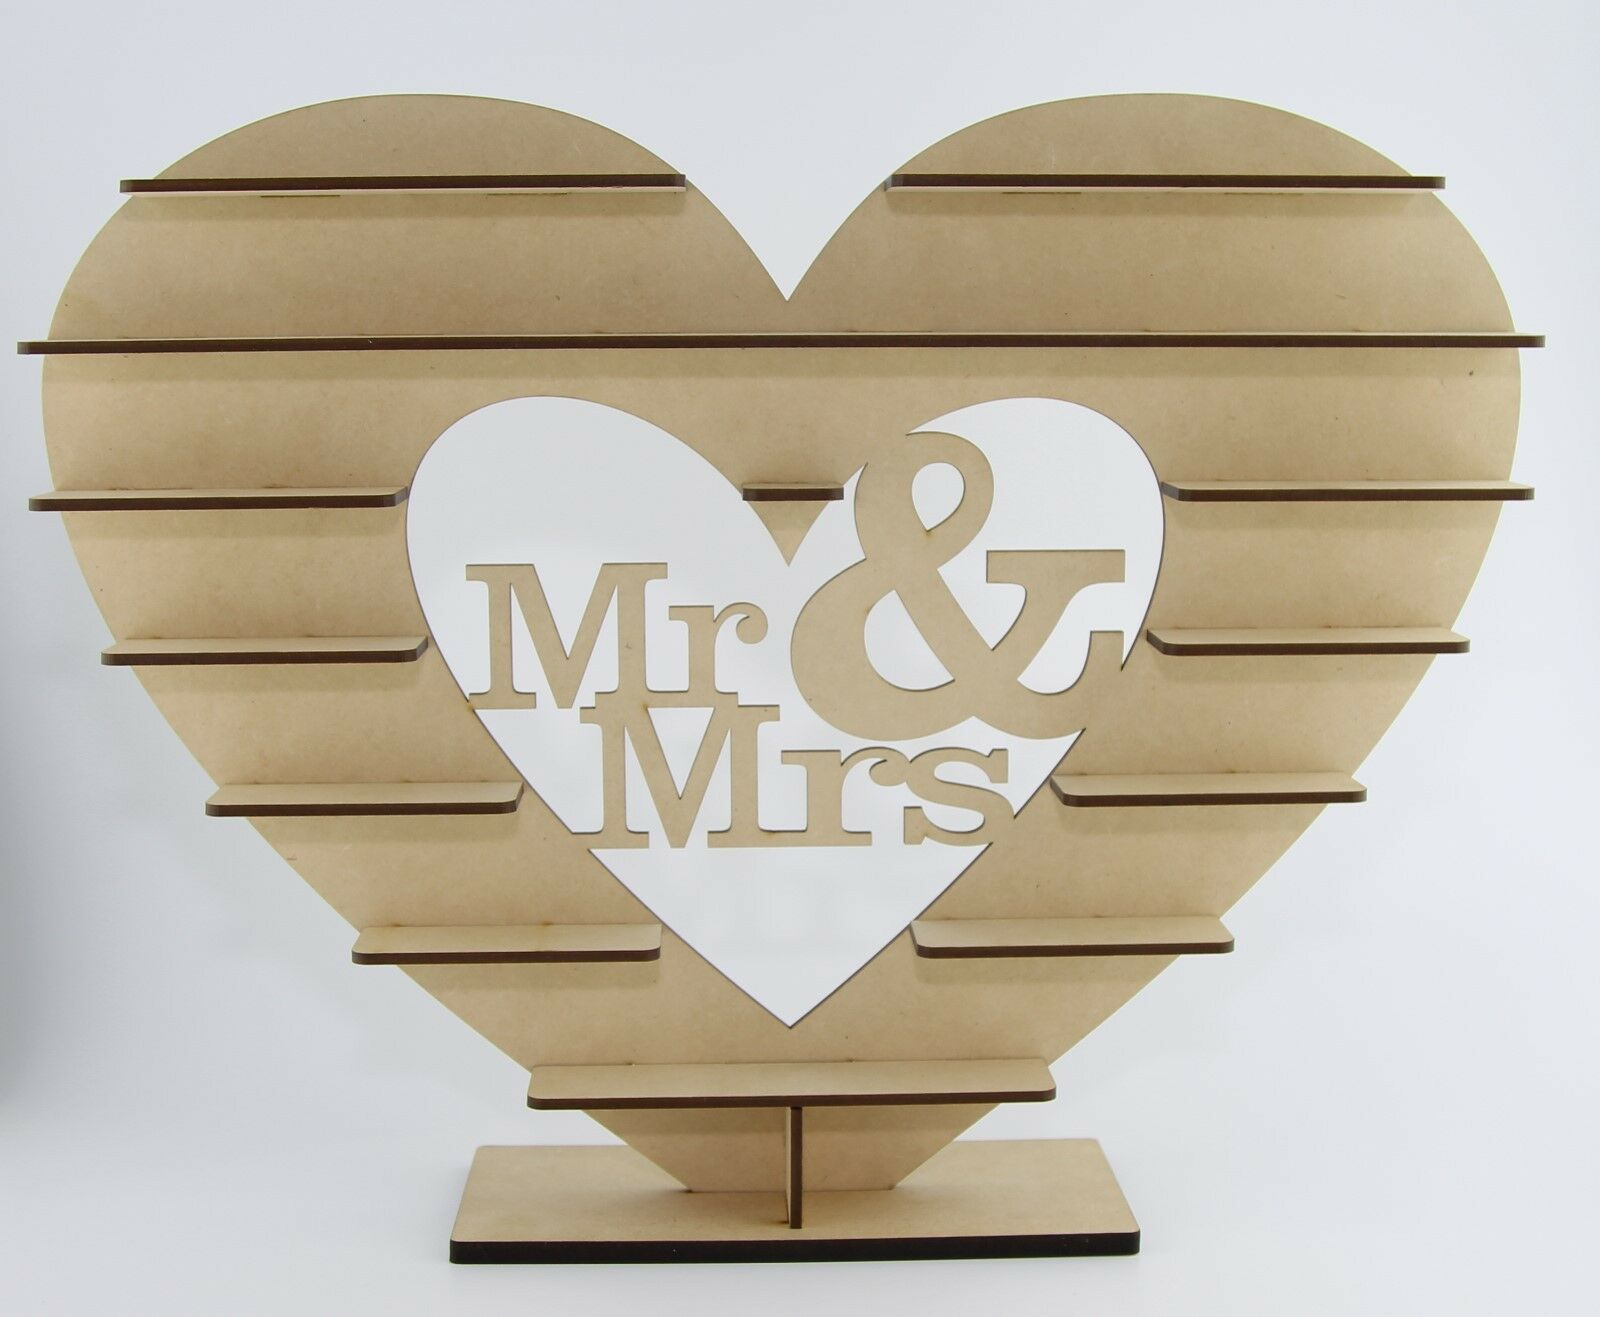 10x mr & Mme  FOR Ferrero Rocher-Heart-TREE-Wedding Display or Centrepiece